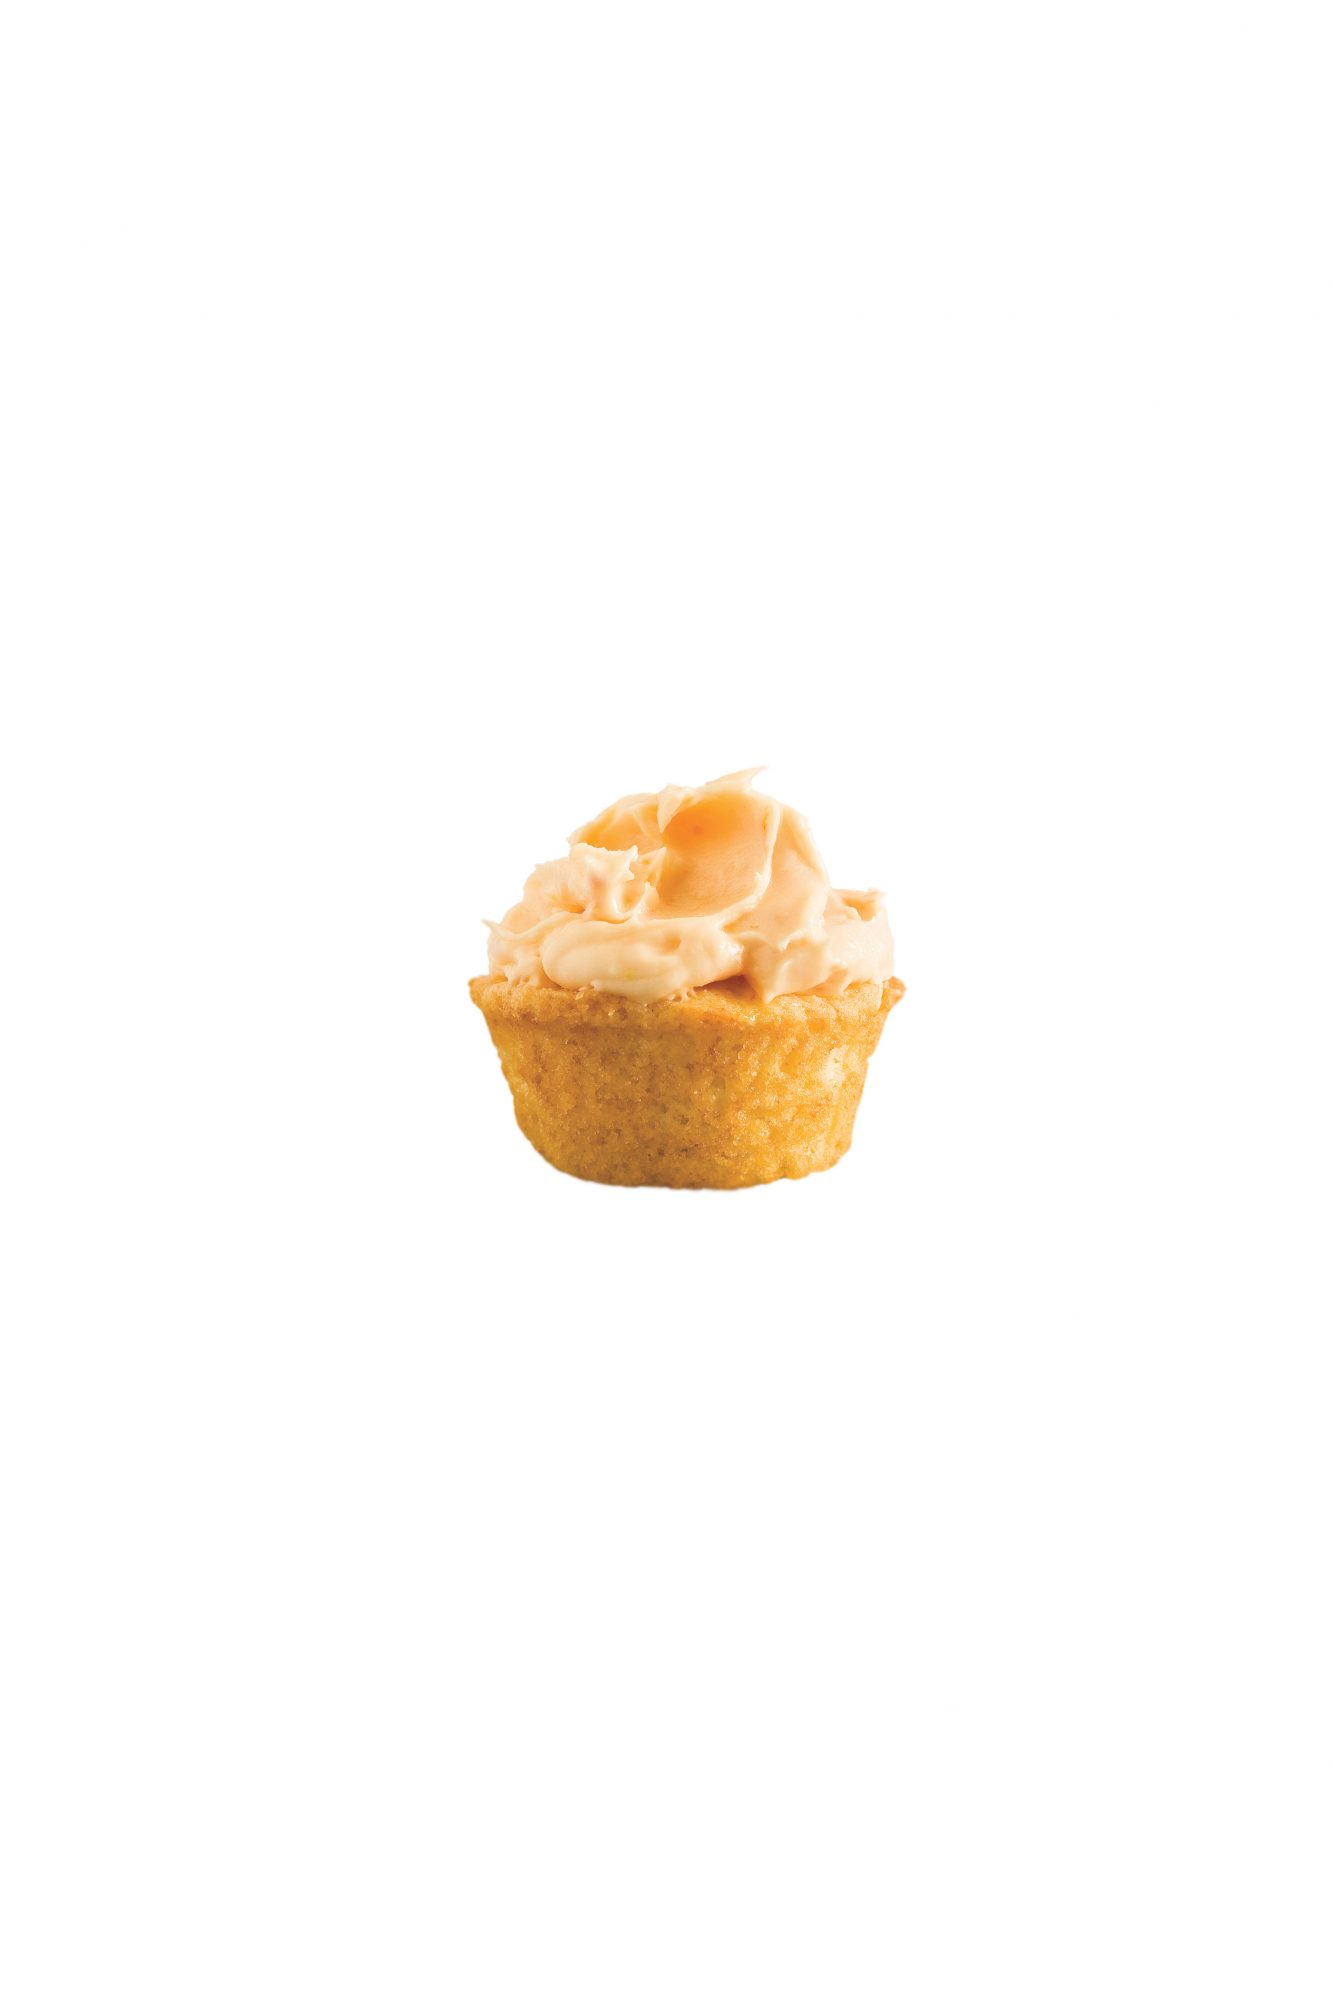 Cupcake Recipes: Fresh Citrus Cupcakes